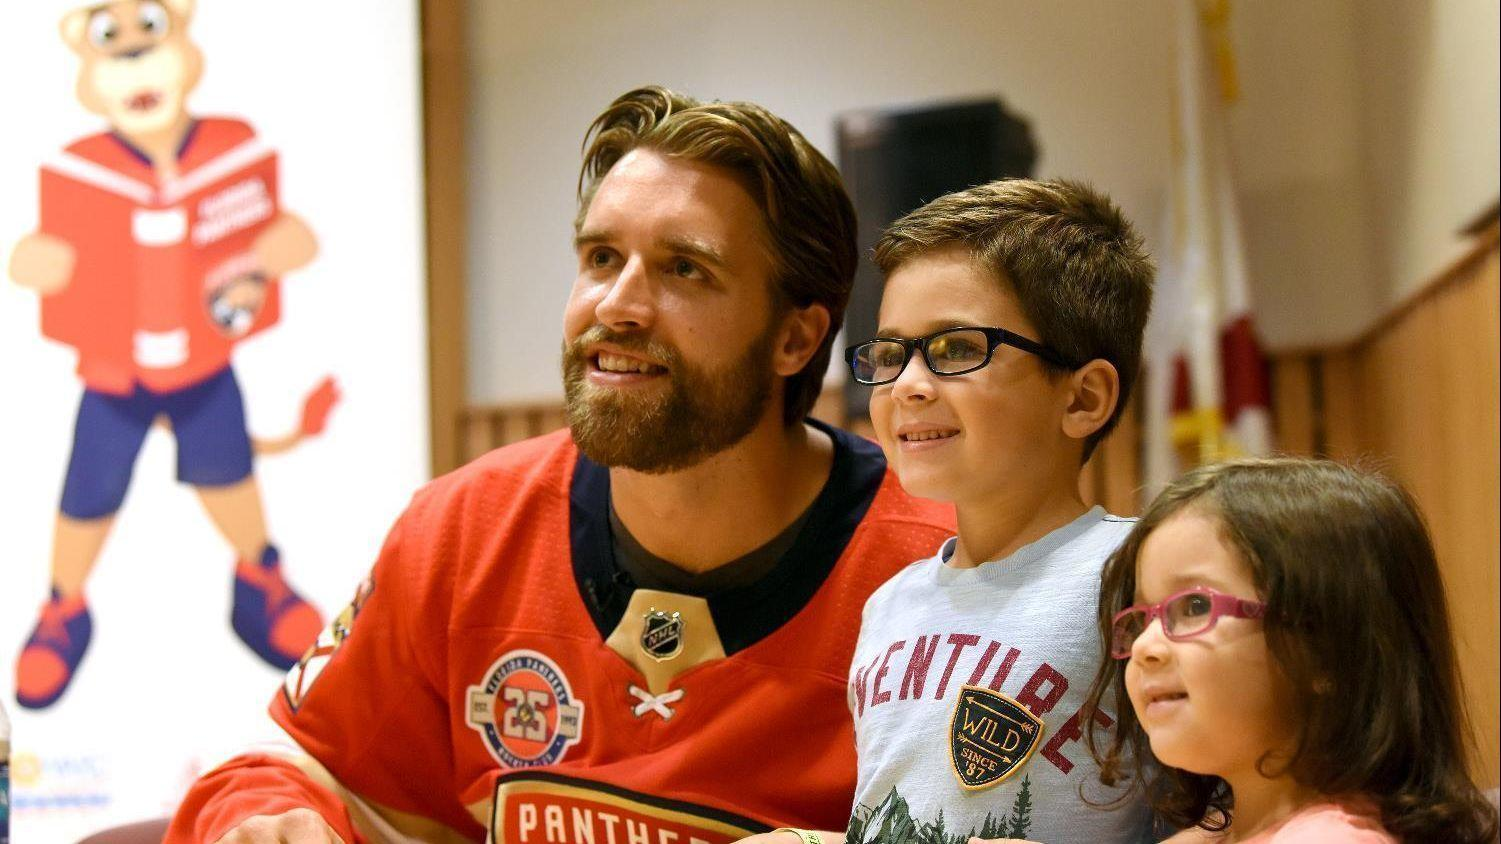 Fl-sp-ekblad-panthers-summer-reading-tour-20180717